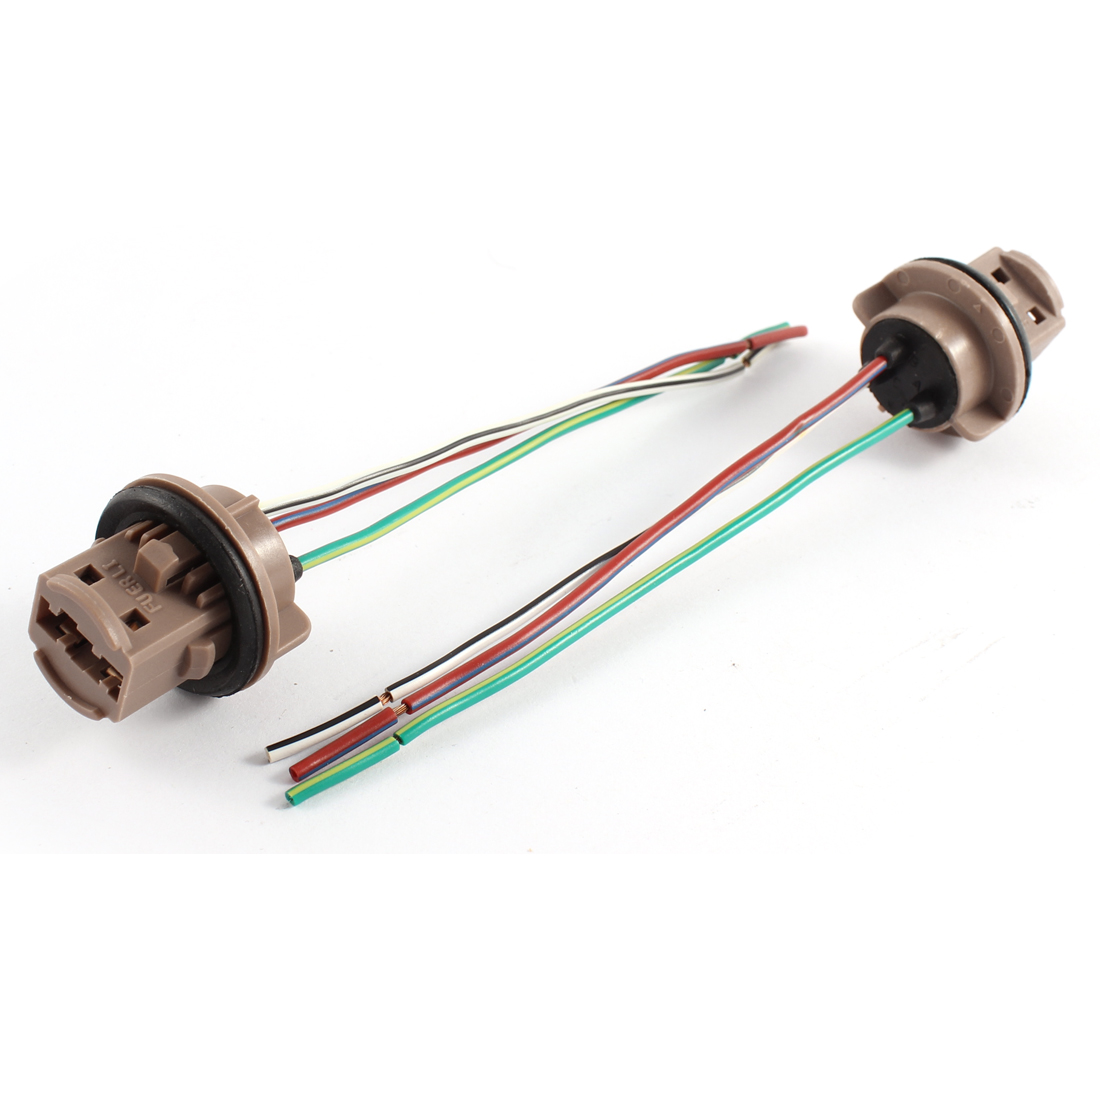 2 PCS T20 7443 Car Auto Light Lamp Pre-wired Wiring Sockets w Three Wires